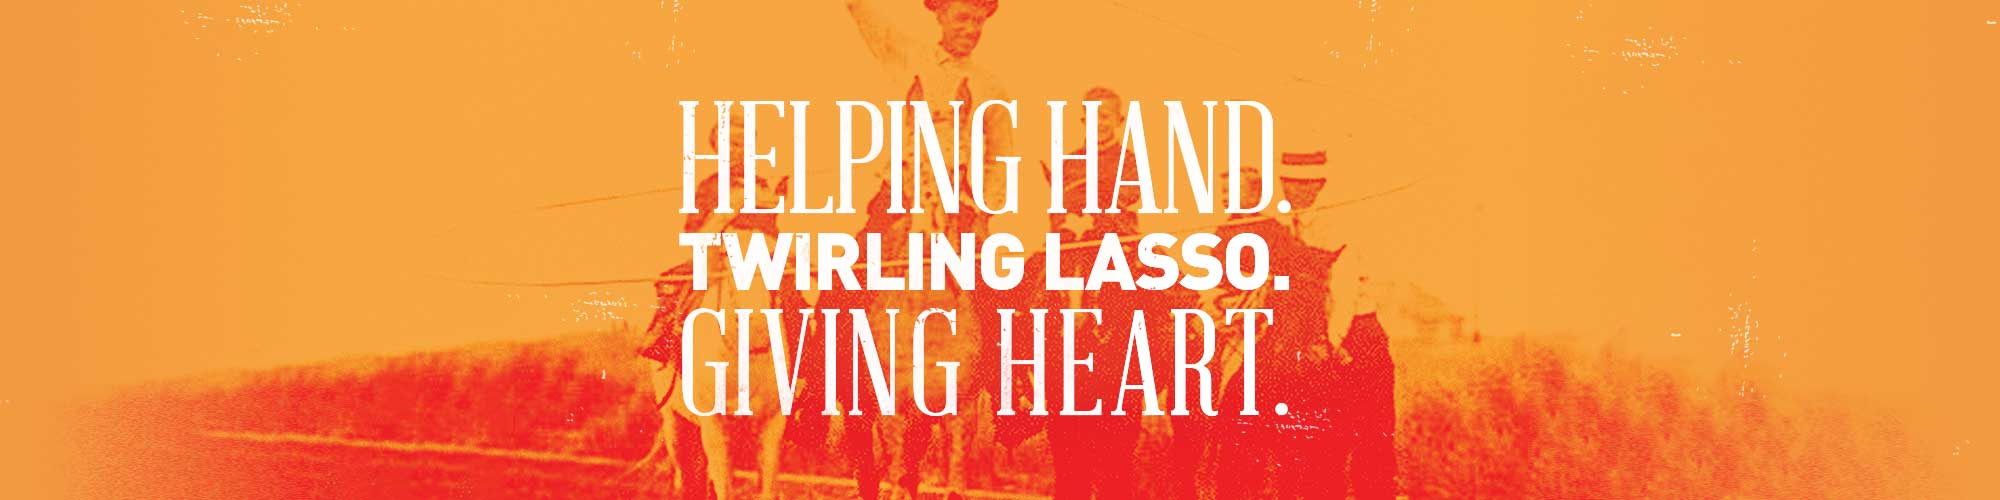 Helping Hand. Twiling Lasso. Giving Heart.